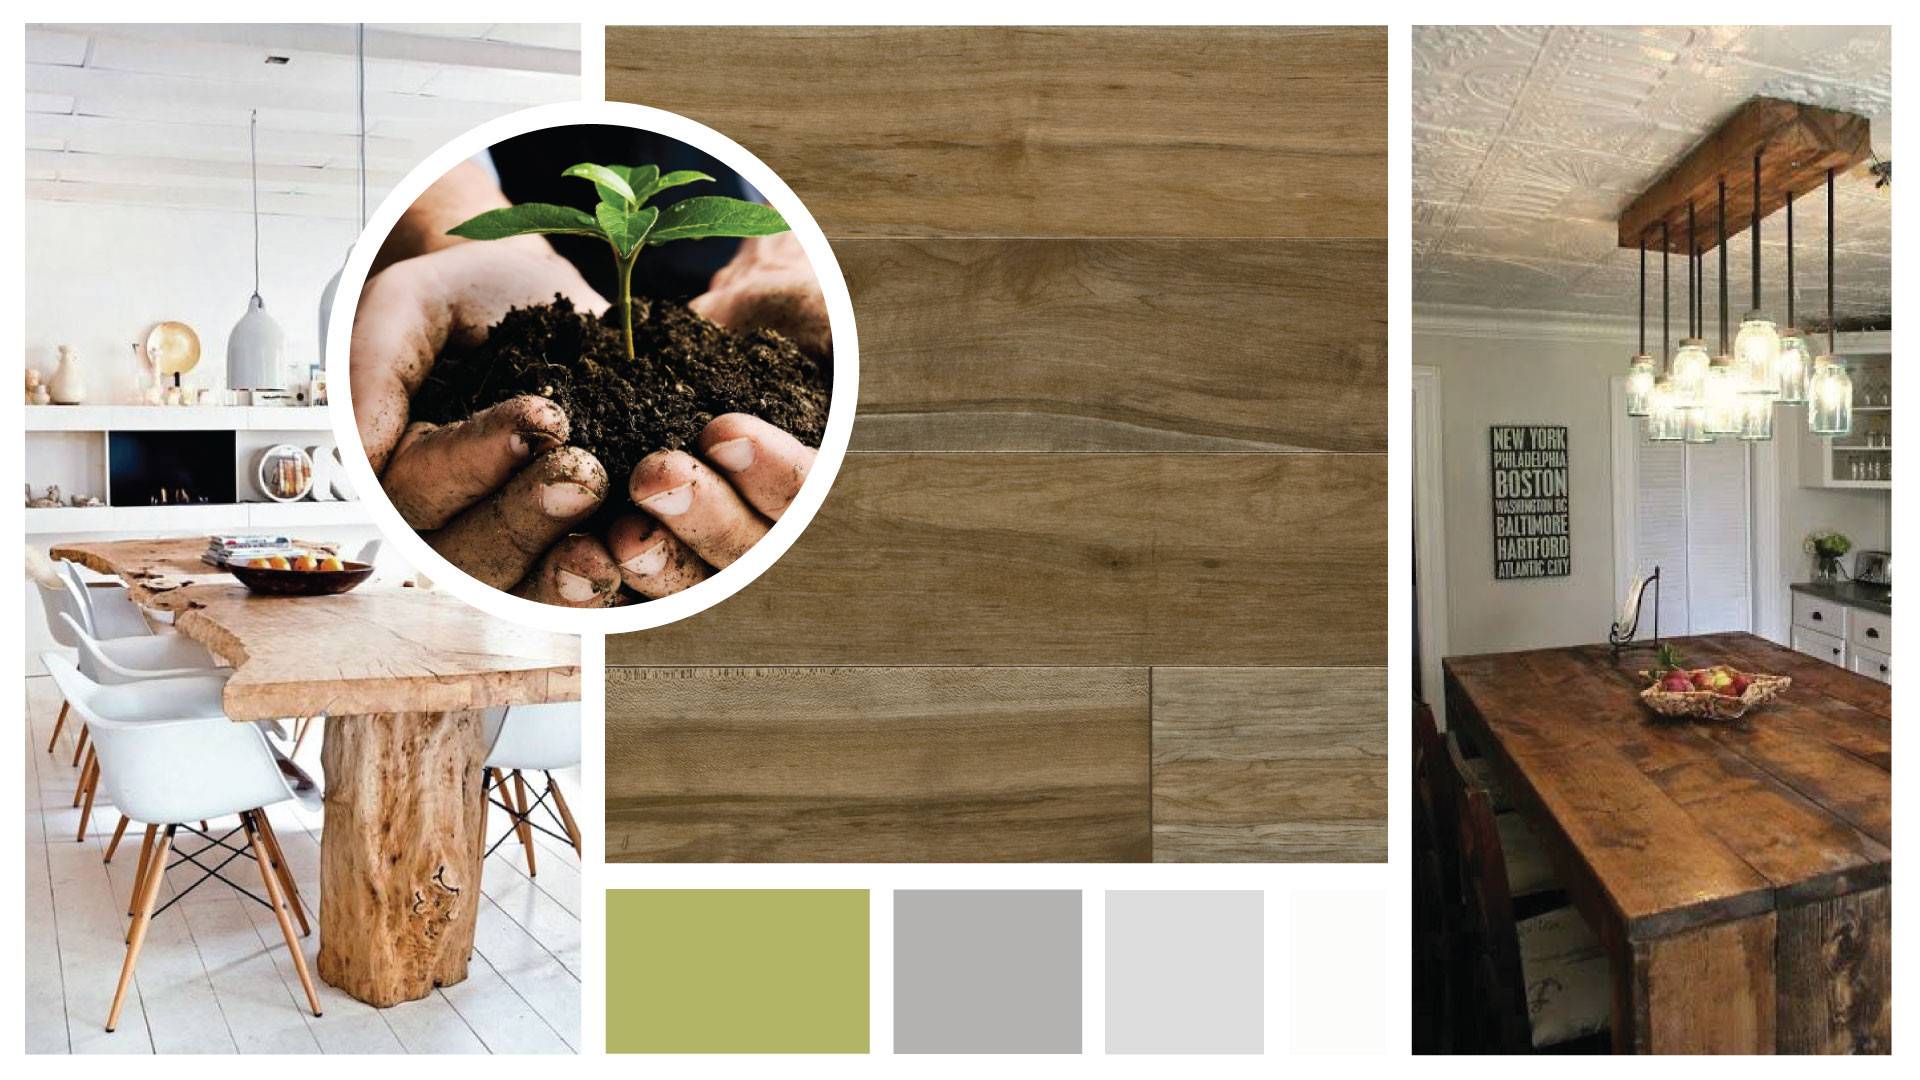 buy hardwood flooring canada of 4 latest hardwood flooring trends lauzon flooring inside in addition to being locally sourced our floors are produced with our breakthrough eco friendly process at lauzon green isnt just a color